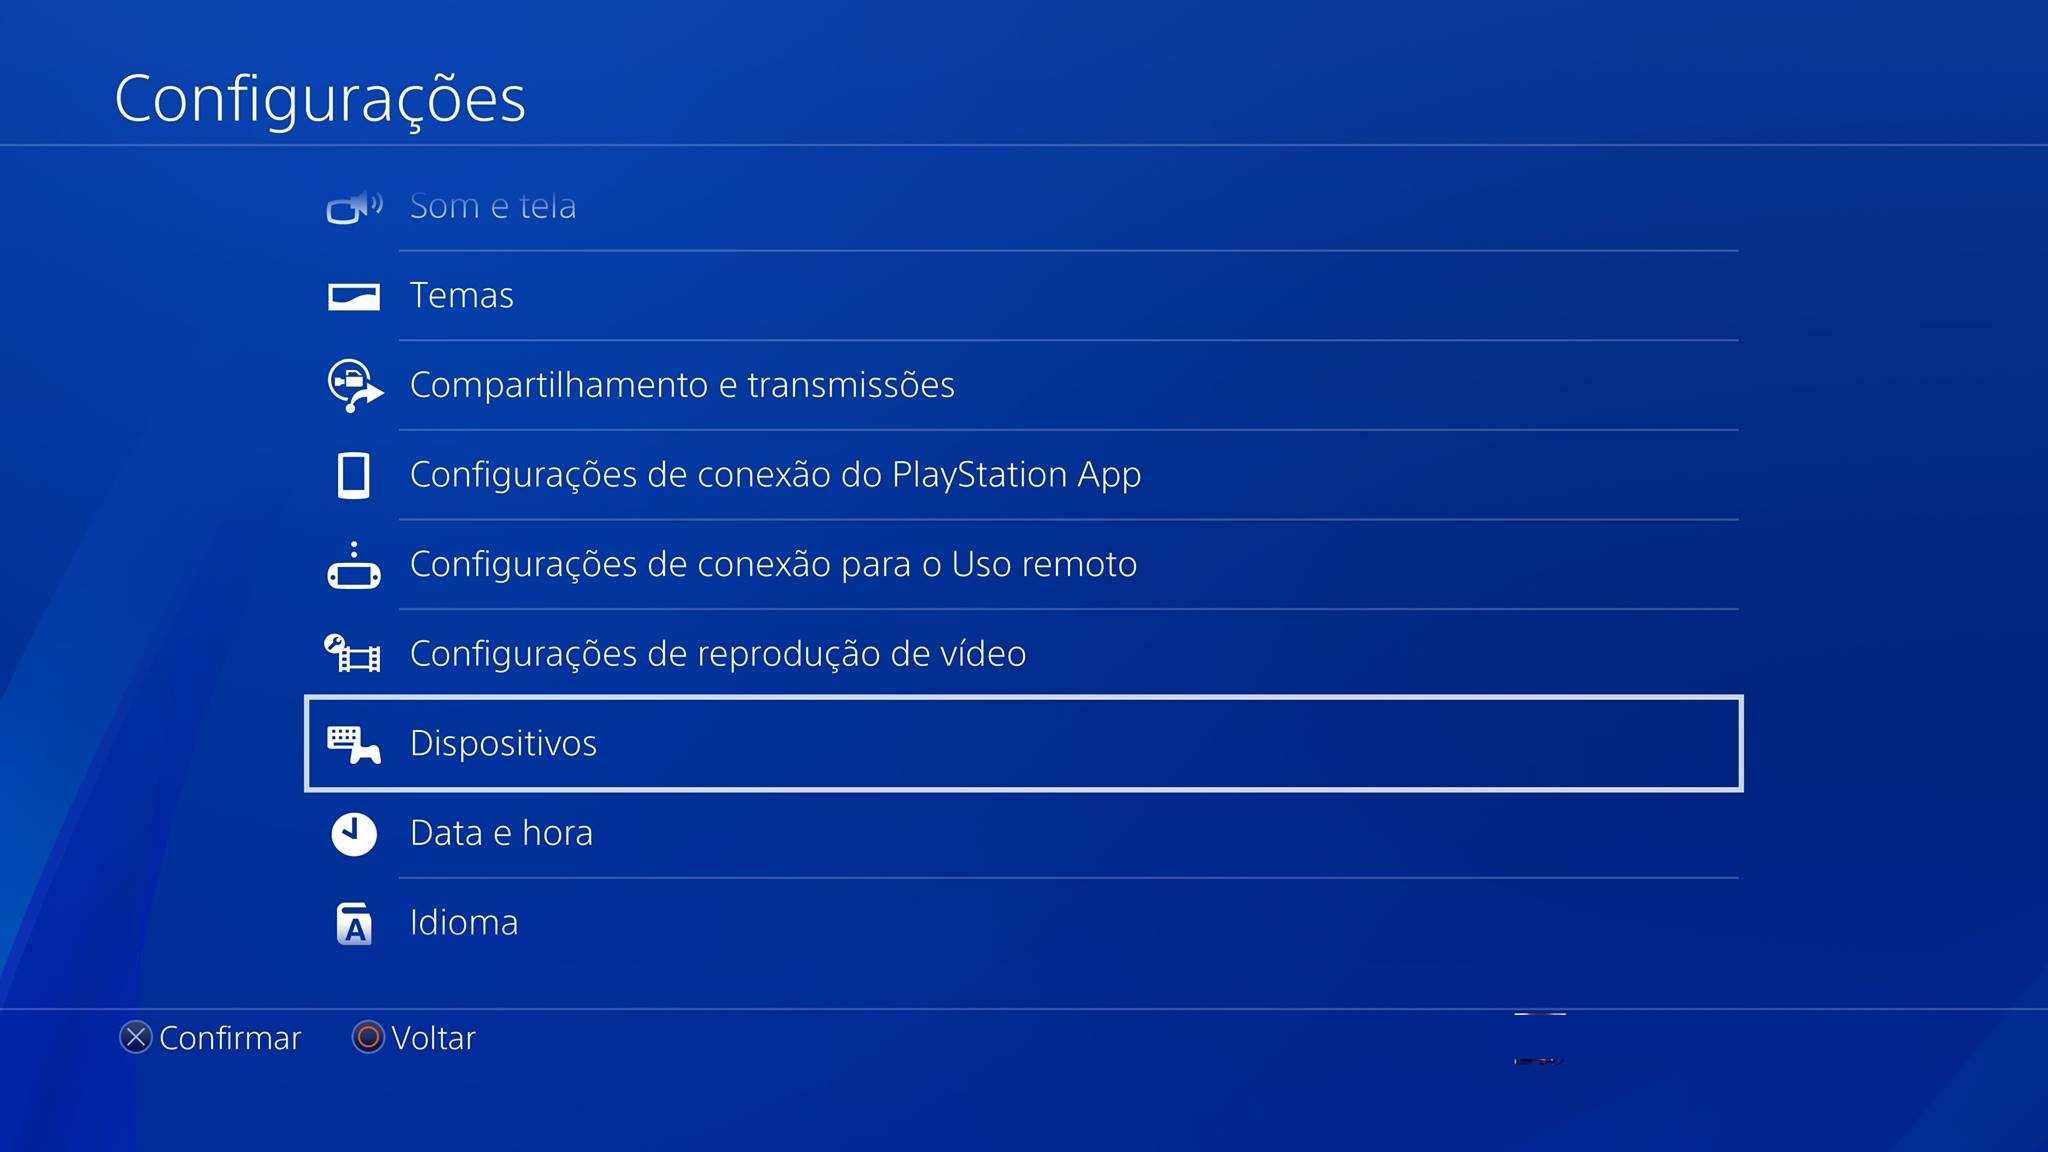 [Tutorial] Como configurar e usar HD externo no PlayStation 4 1